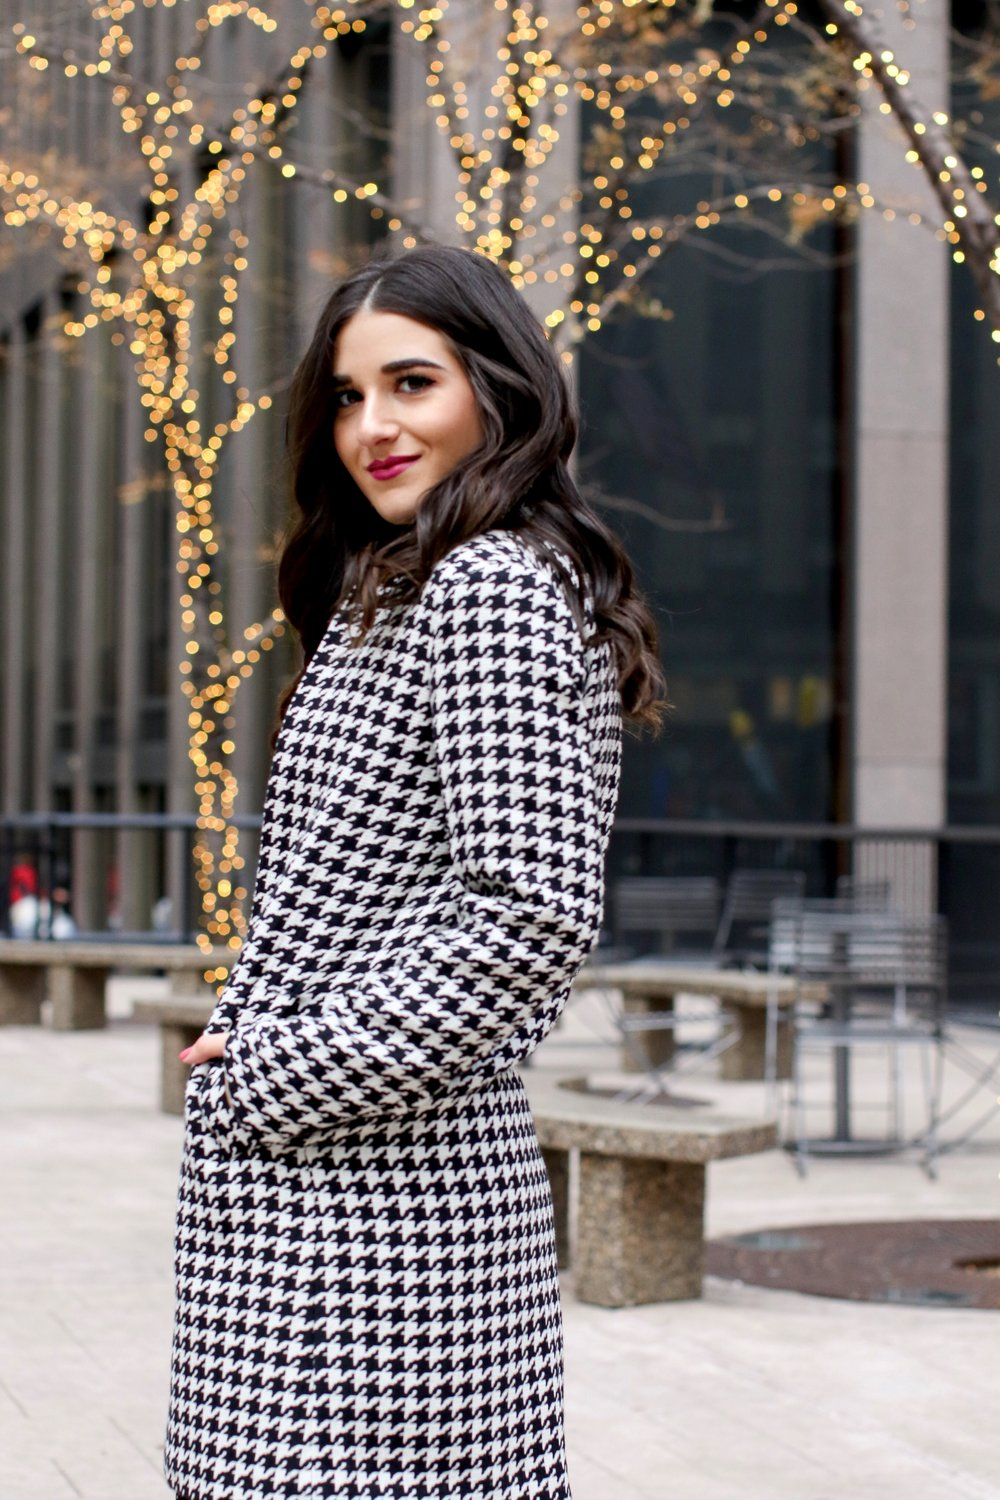 Houndstooth Coat White Booties The Pros And Cons Of Freelancing Esther Santer Fashion Blog NYC Street Style Blogger Outfit OOTD Trendy Holiday Season New York City Photoshoot Pretty Hair Black Star Dress Cute Shoes H&M Zara Girl Winter Women Wear Shop.jpg